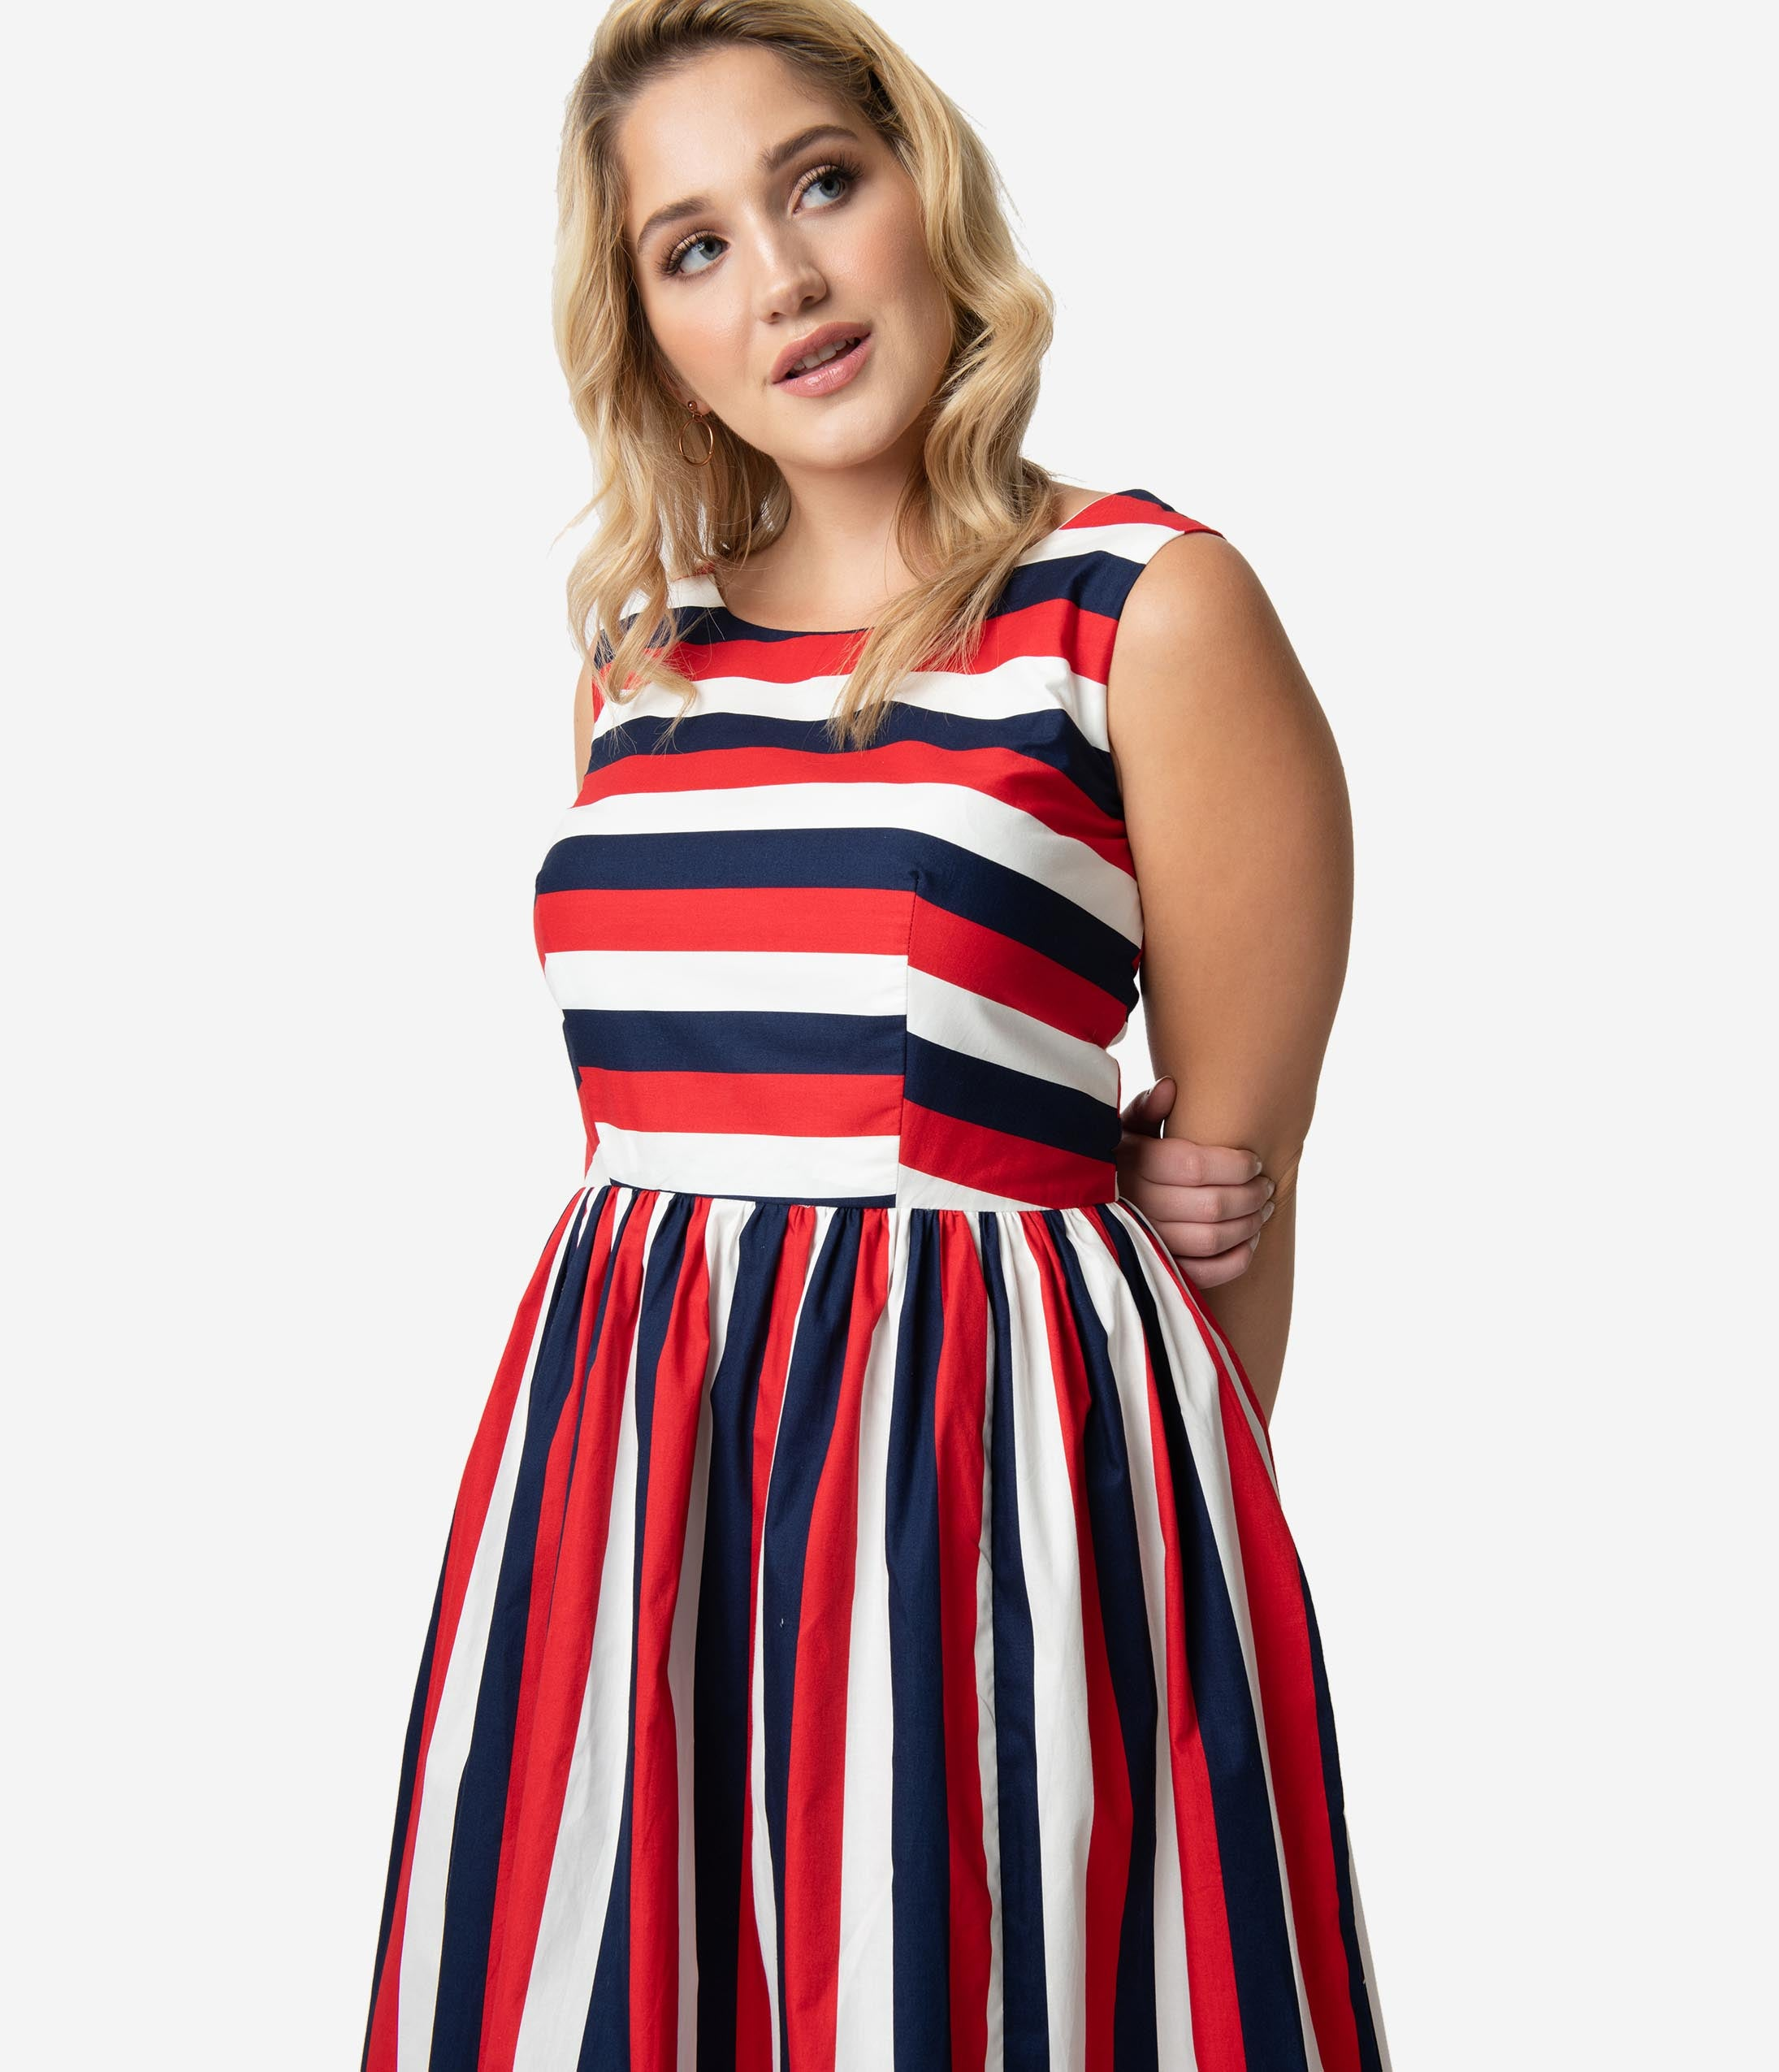 Plus Size Retro Style Red White & Navy Blue Stripe ...